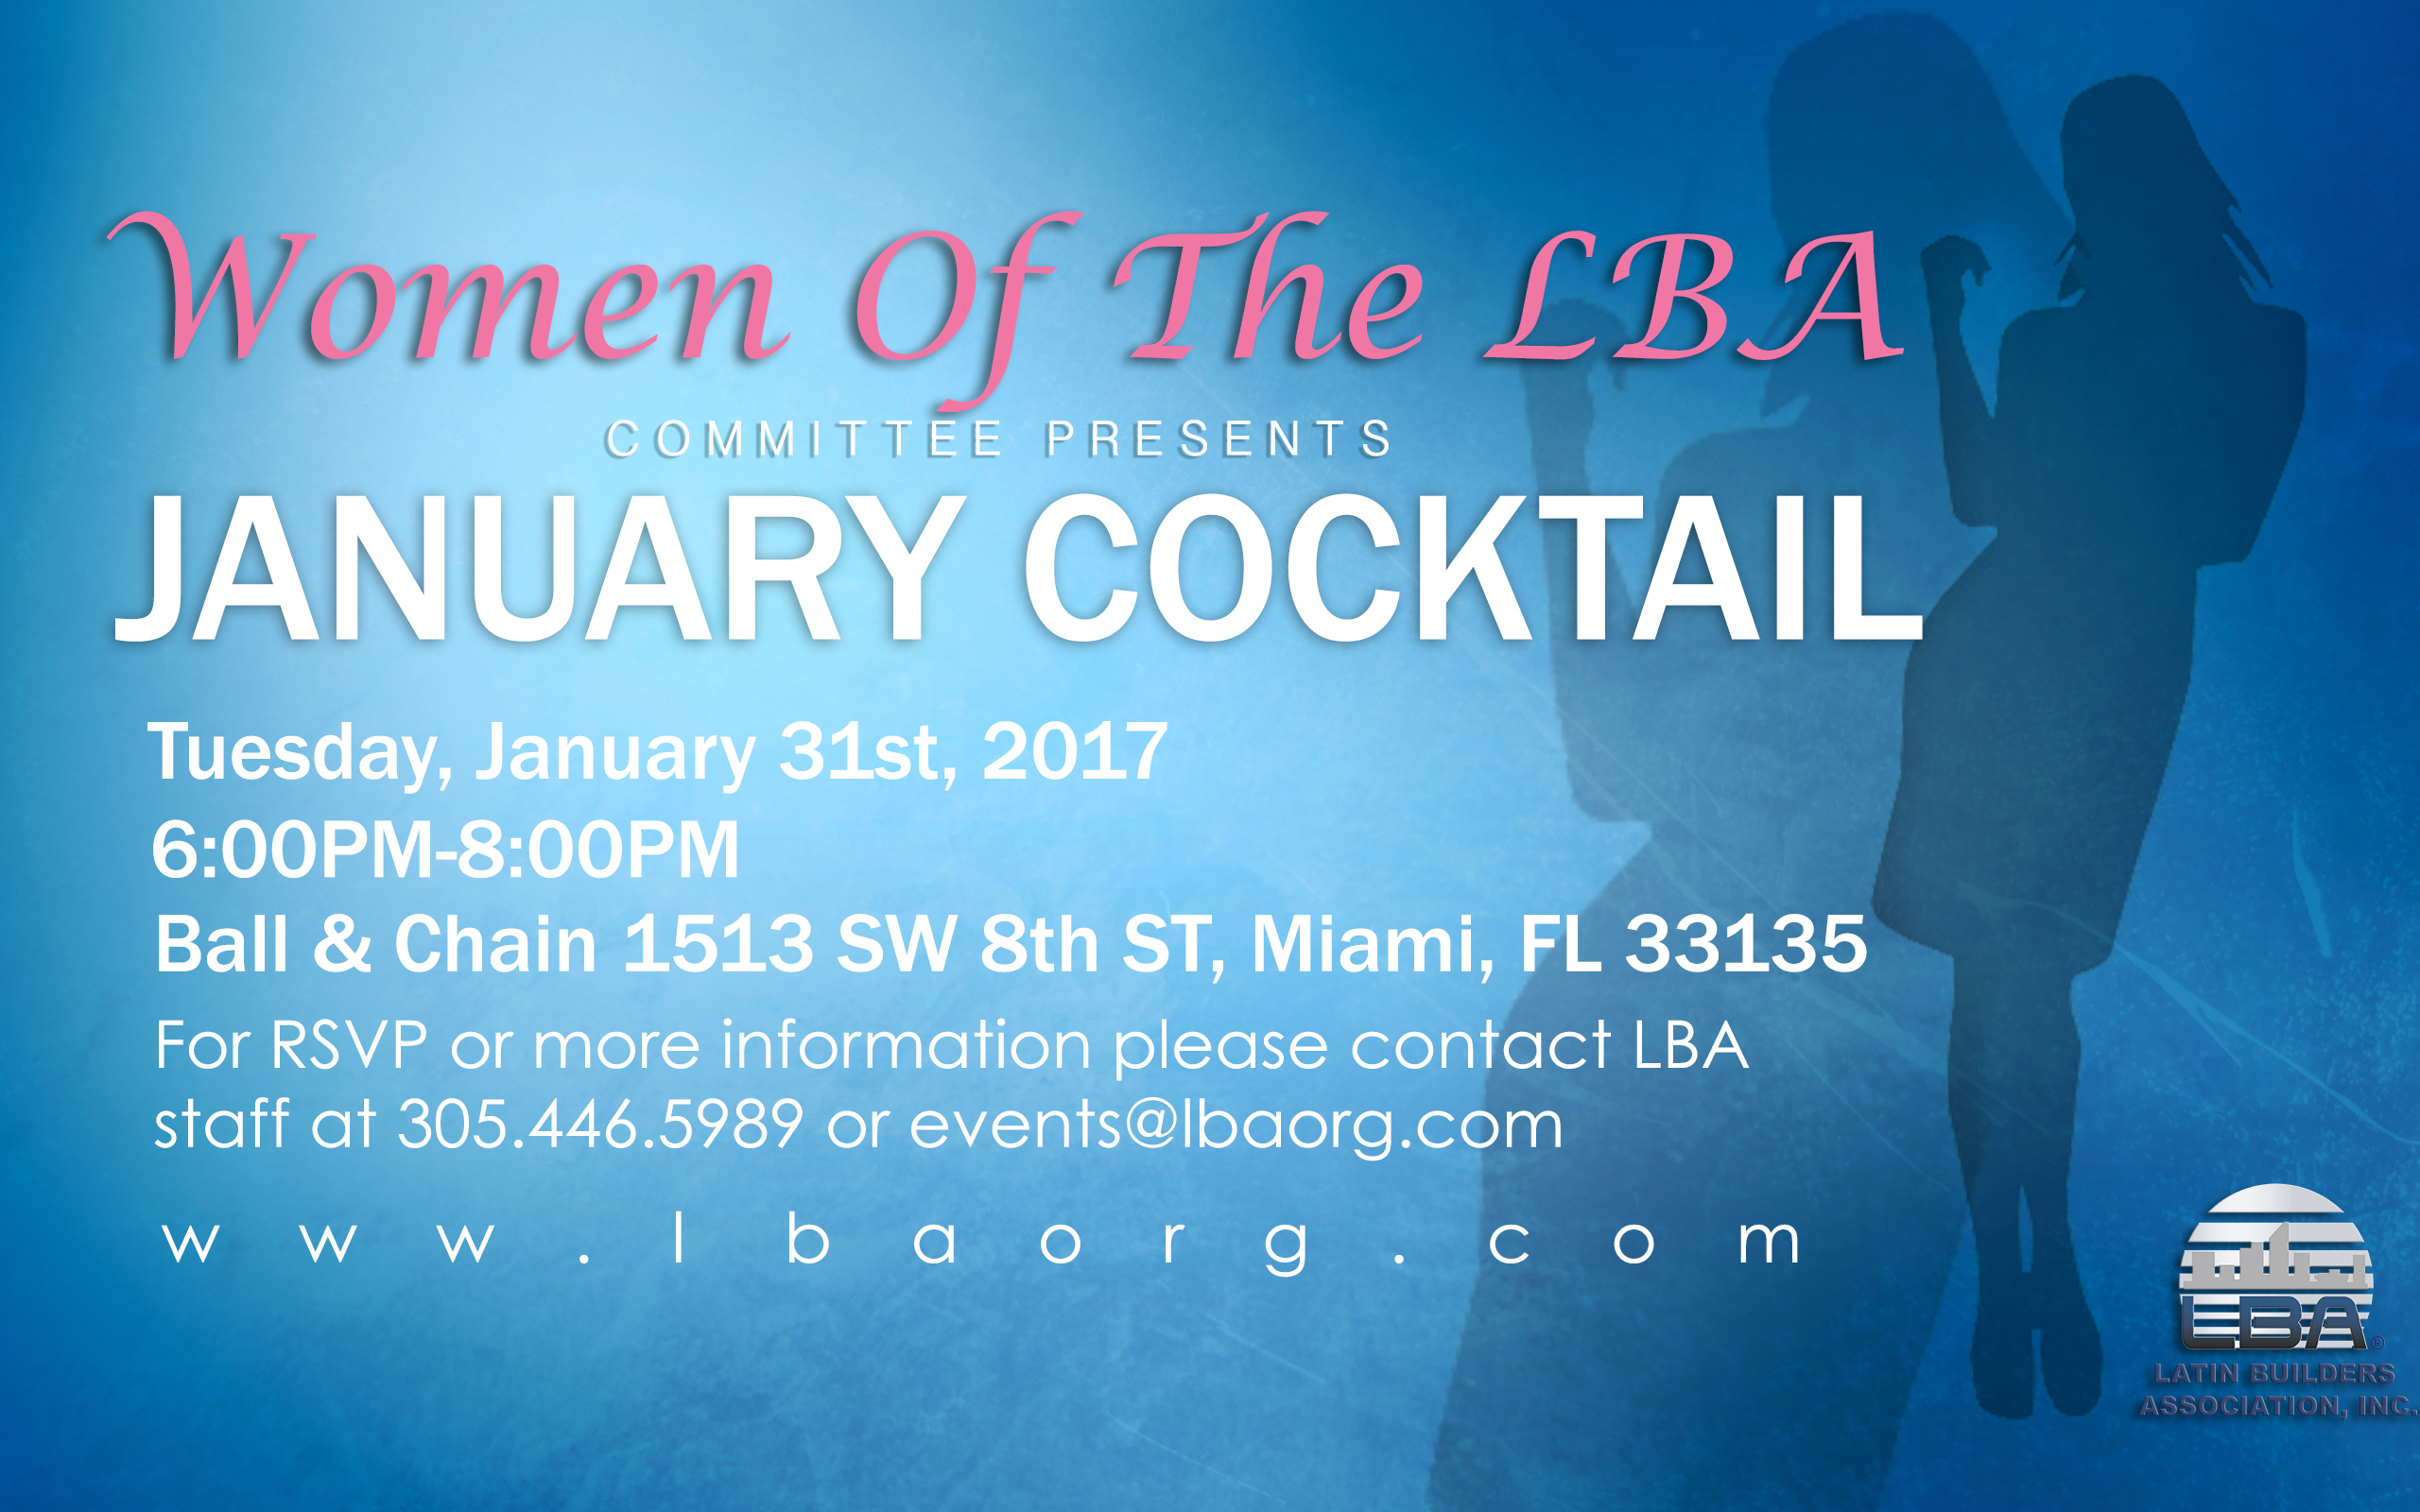 women-of-the-lba-eblast-flyer